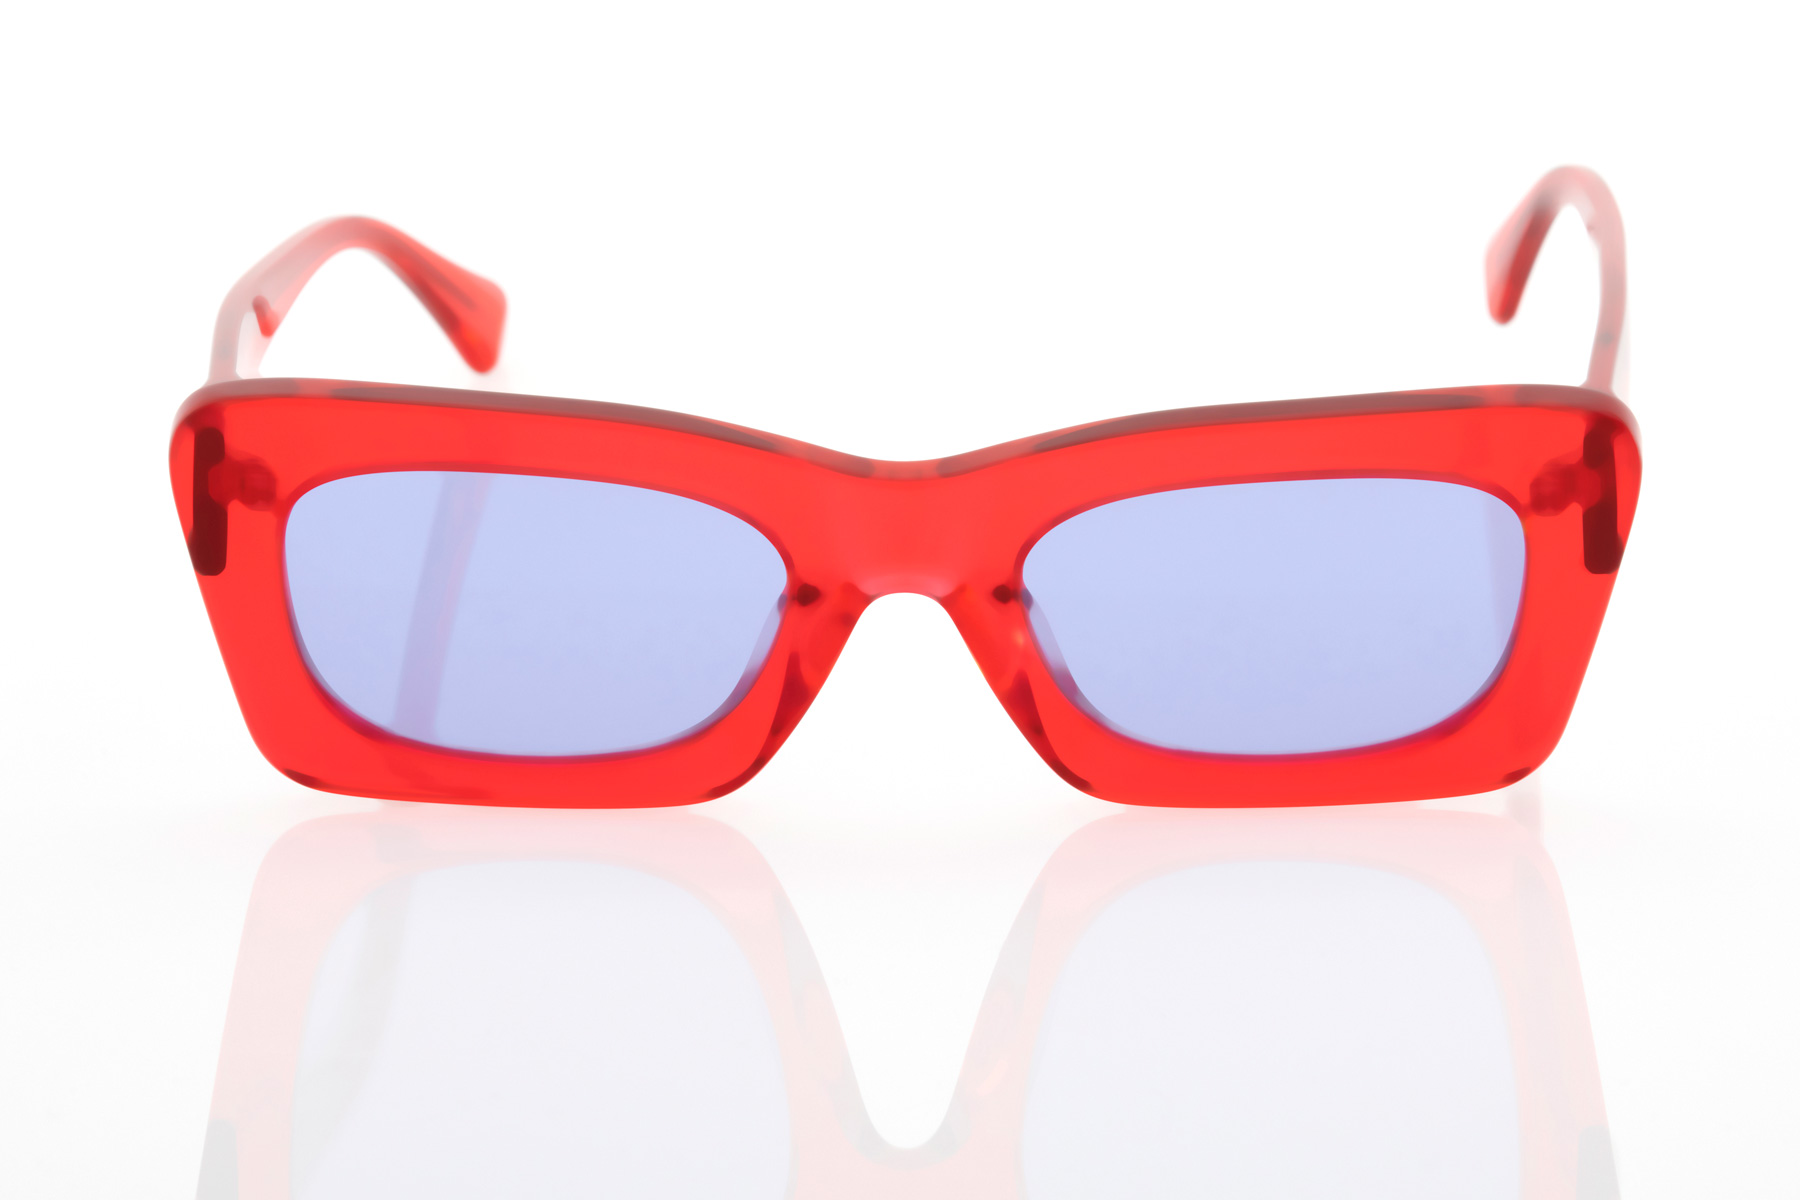 Unisex Κόκκινα Γυαλιά Ηλίου Hawkers Lauper Red Navy